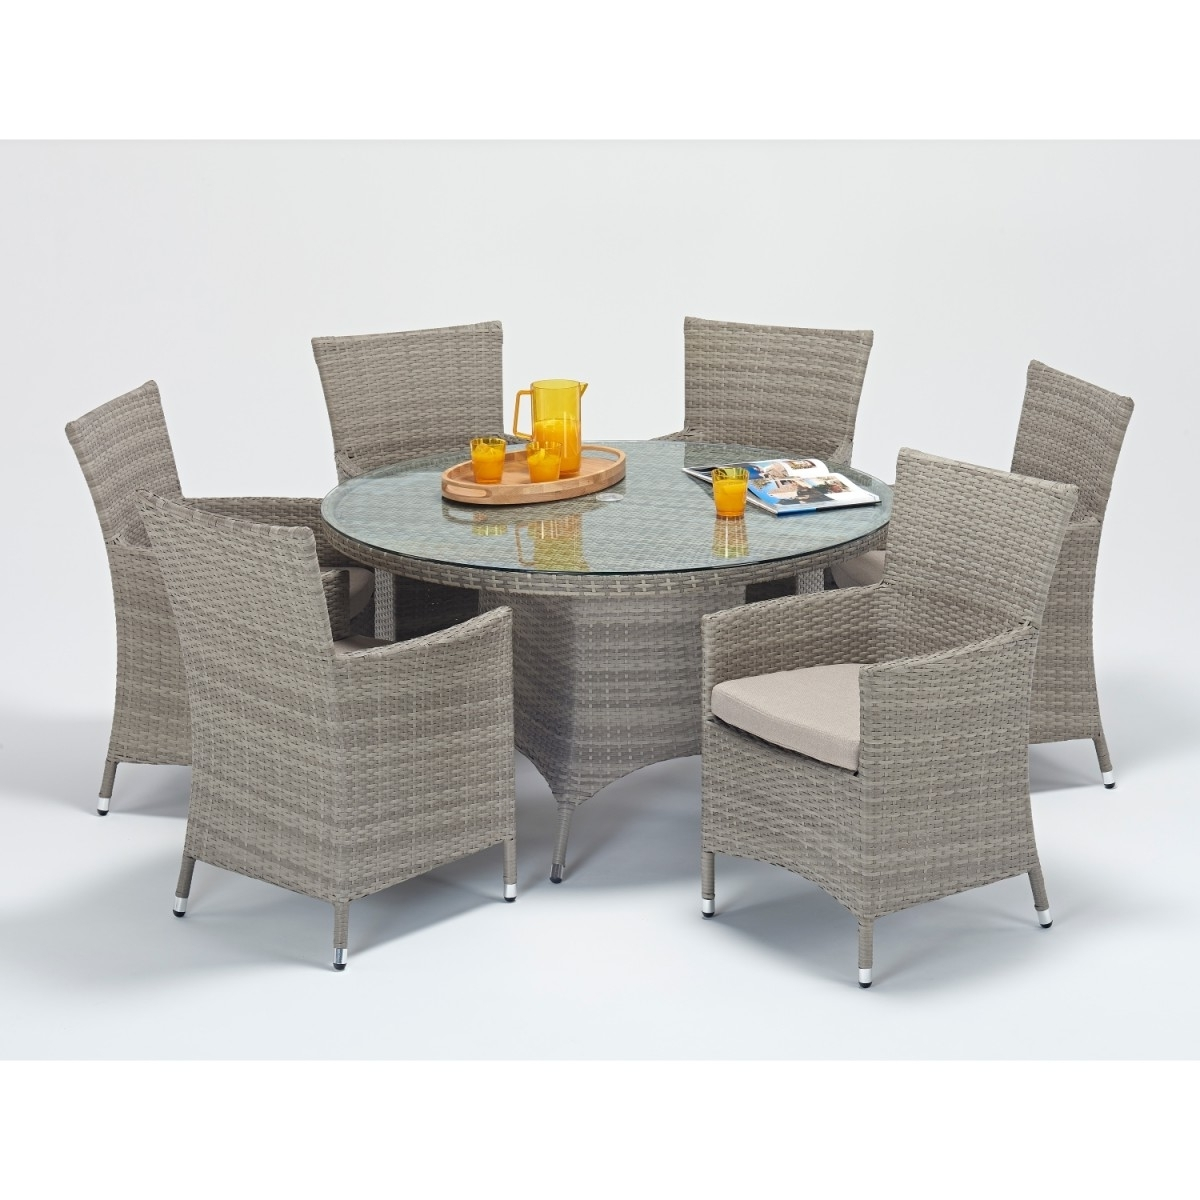 6 Seat Round Dining Tables Within Most Popular Rattan Set – Rustic 6 Seat Round Dining Set Wgf  (View 9 of 25)